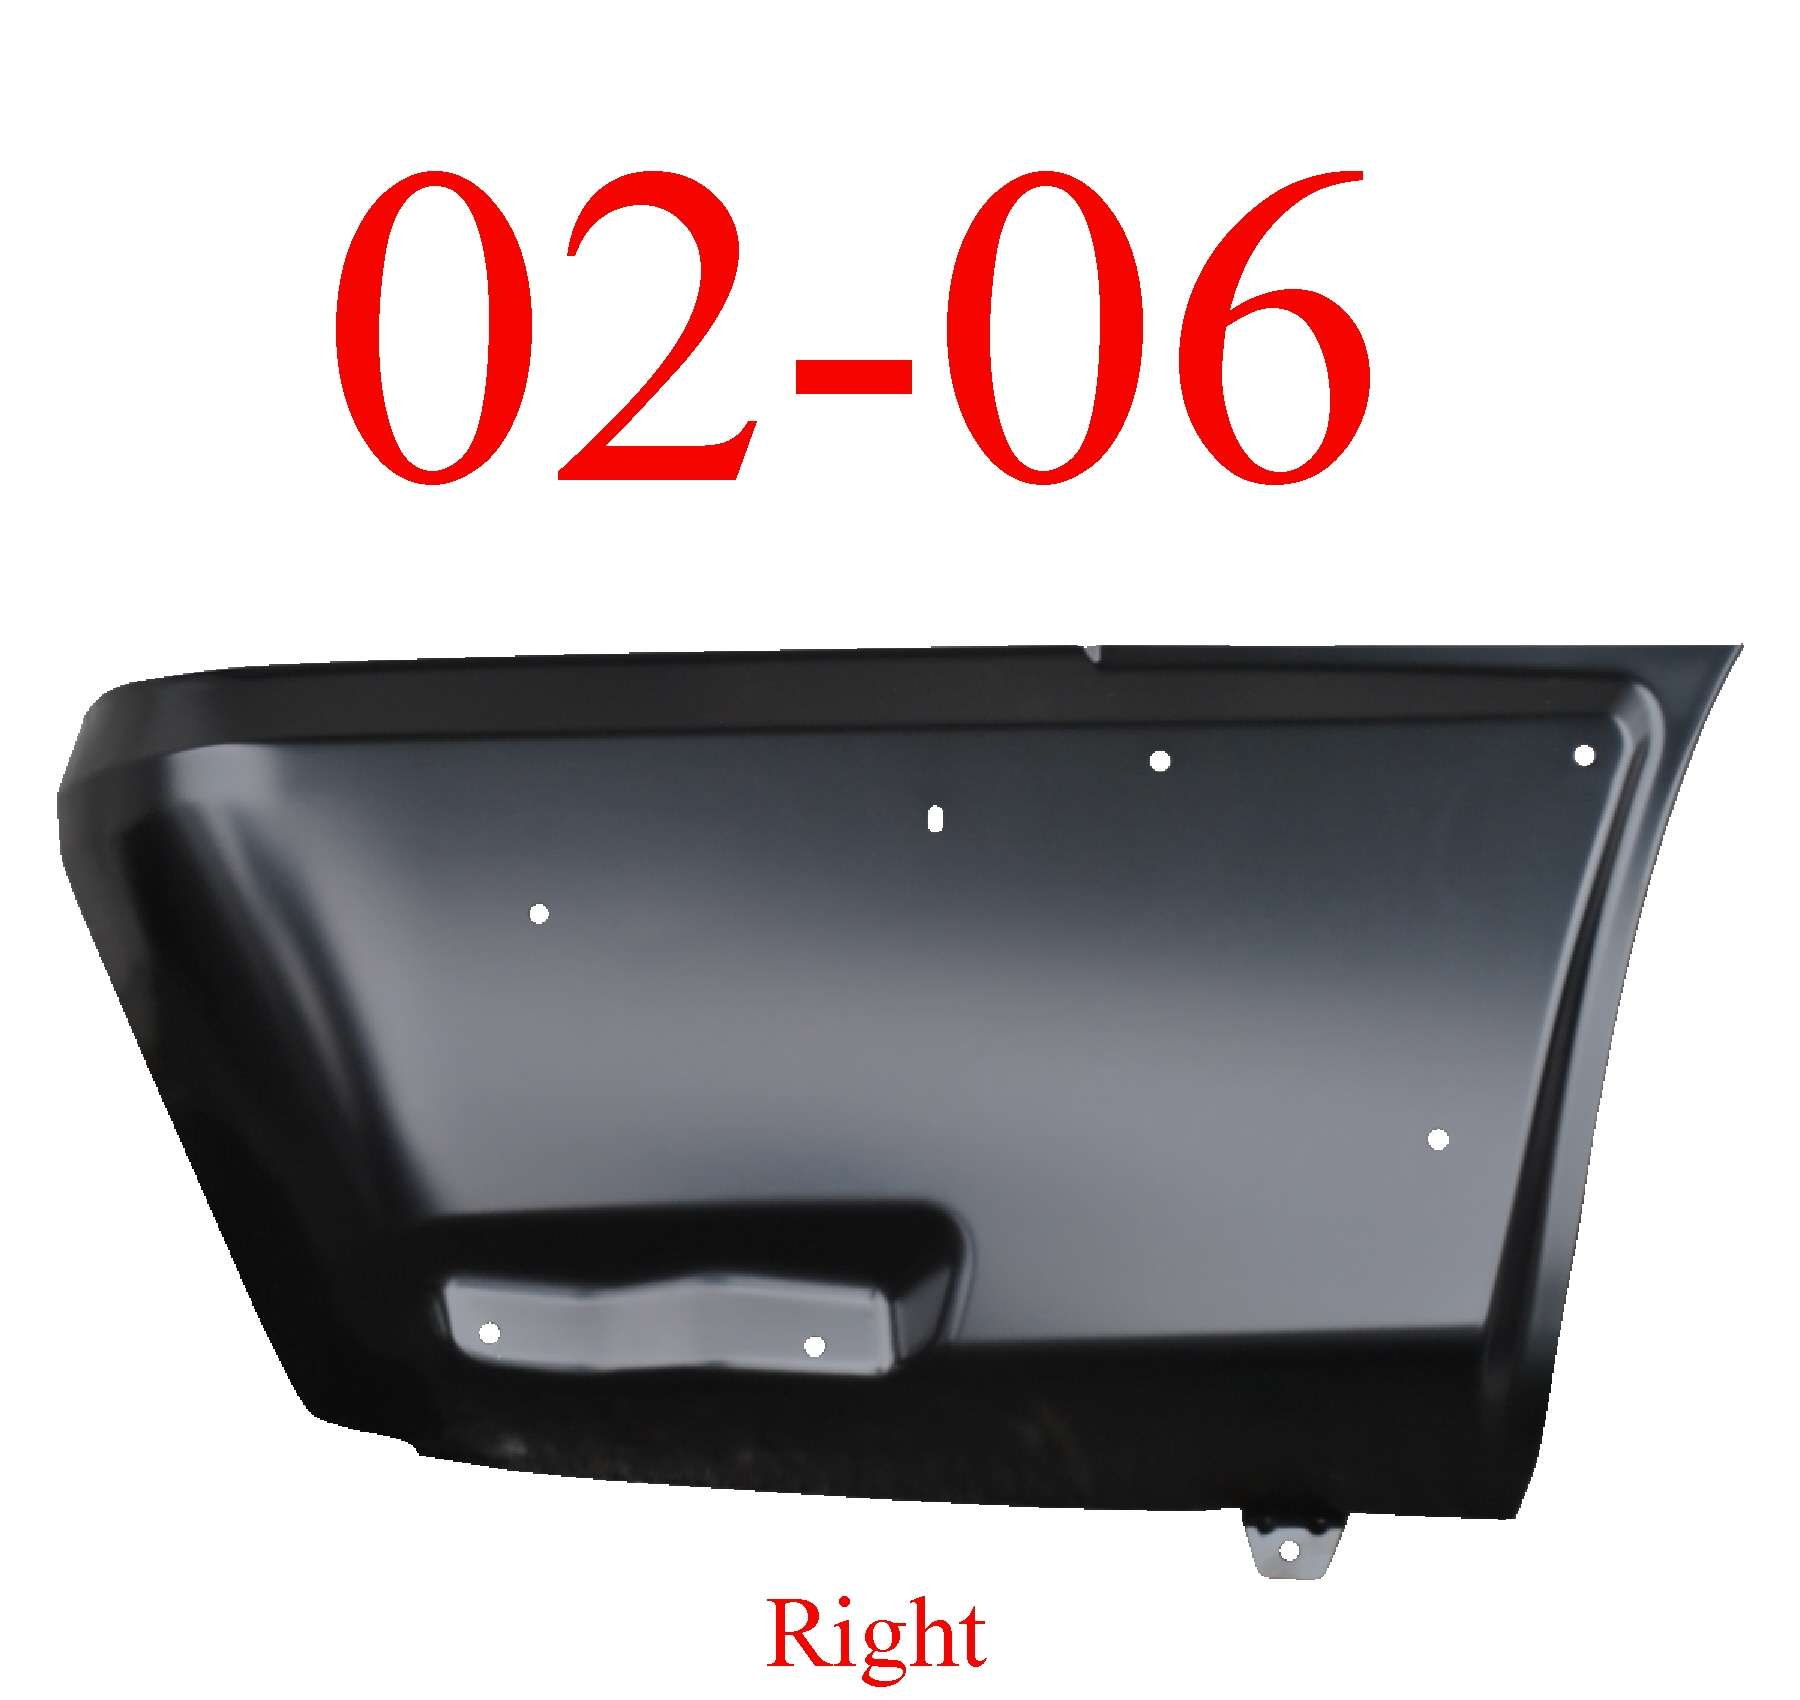 02-06 Chevy Avalanche Right Rear Lower Quarter Panel W/Cladding